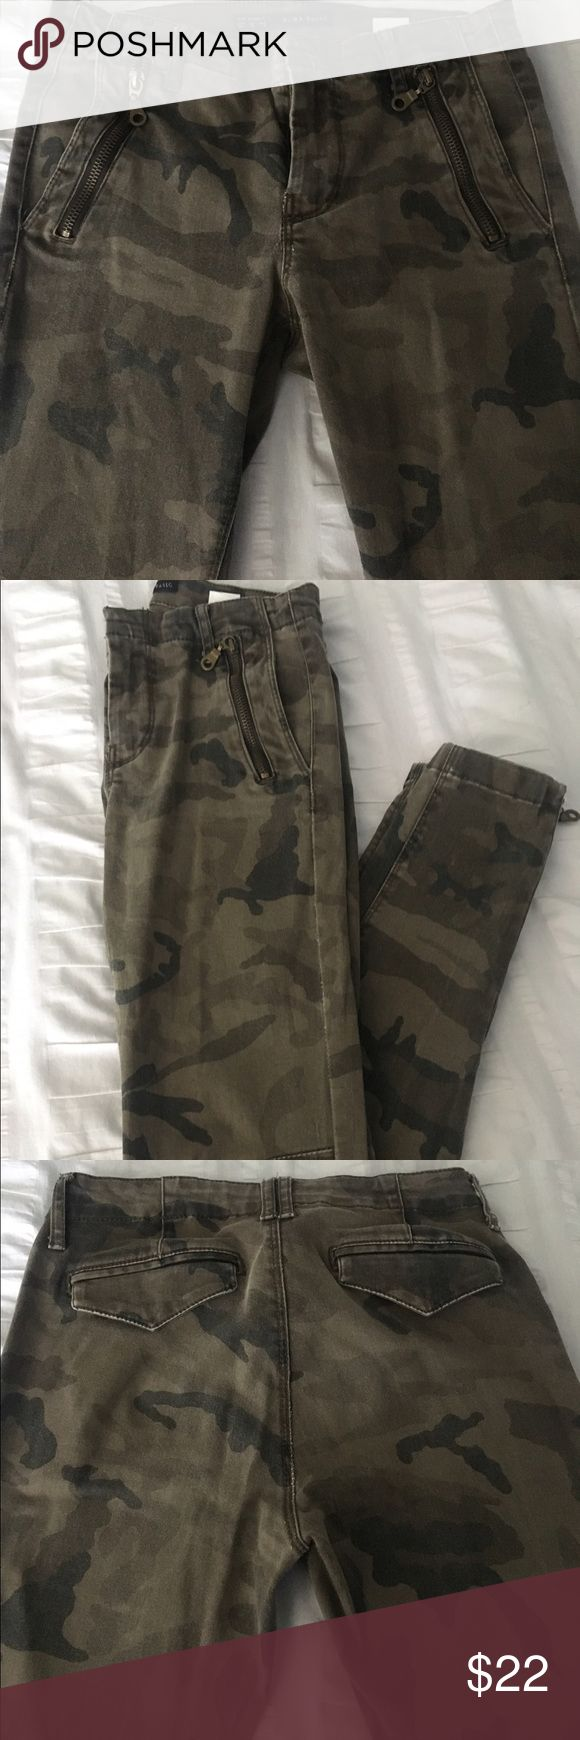 Zara Basic collection woman's camouflage  jeans Zara Basic Collection- woman's camouflage print jeans with side zip detail at the ankle. Very comfortable. Soft fabric. Has the faded look. No signs of wear. Zara Jeans Skinny